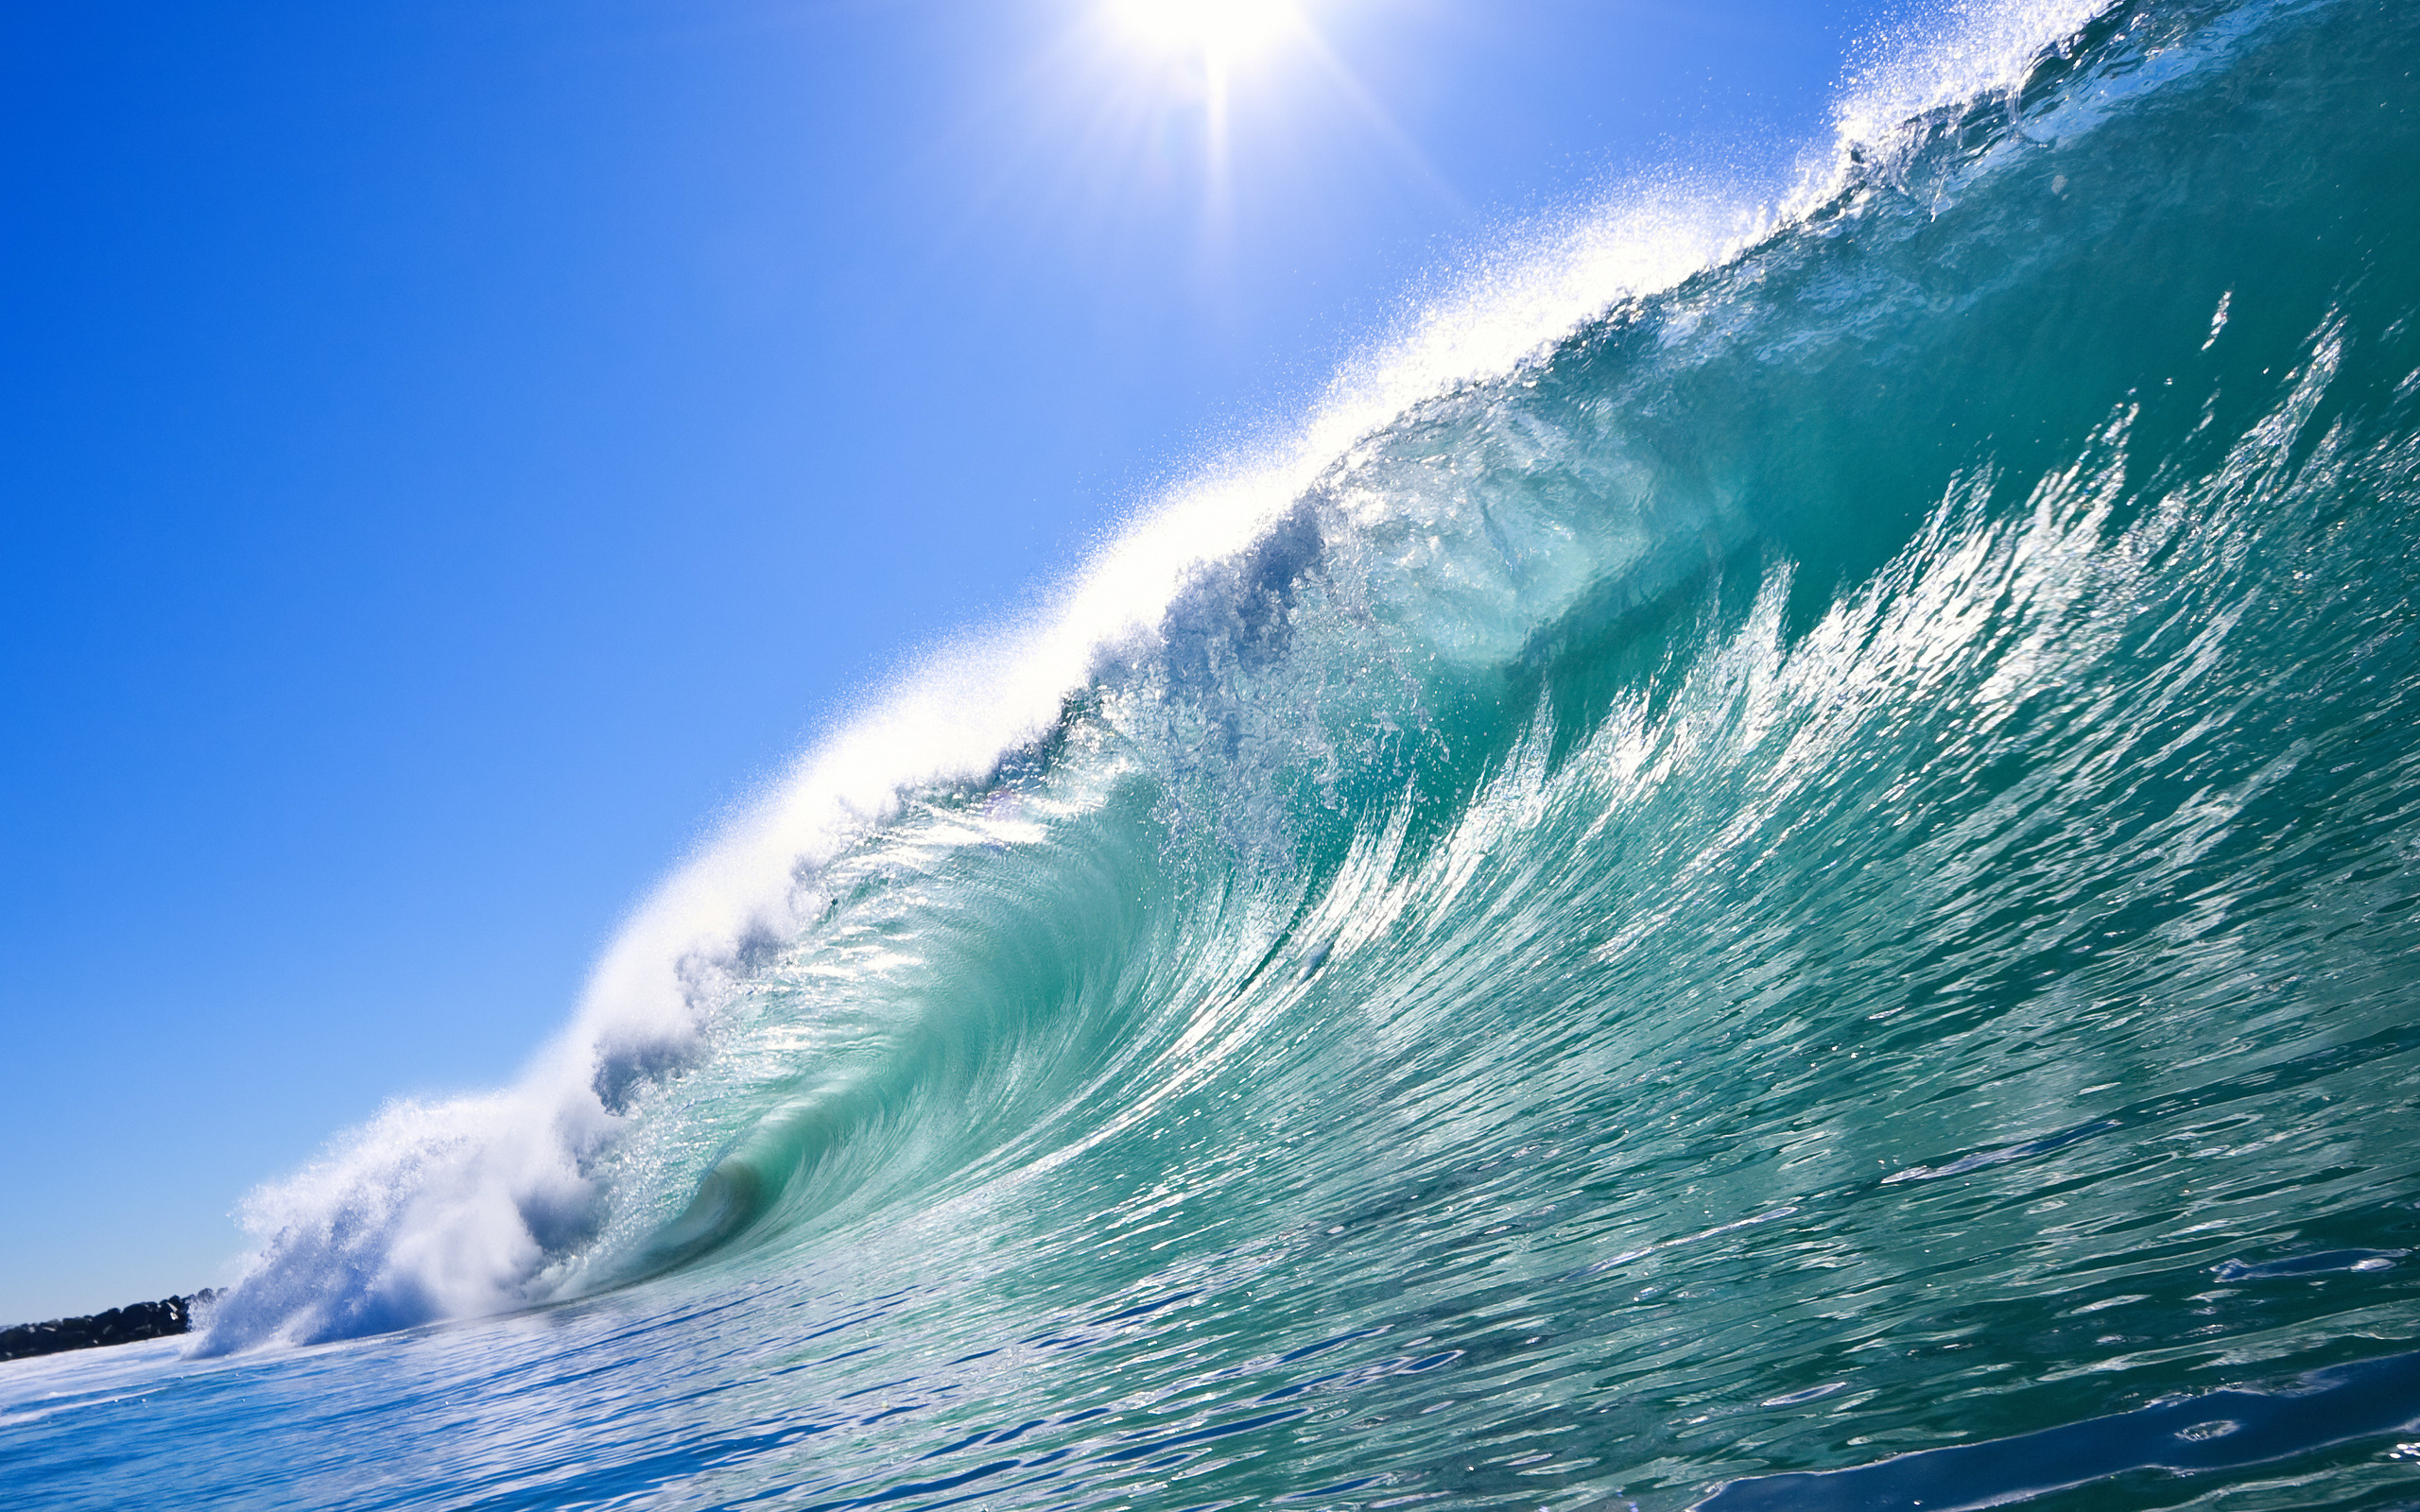 Ocean Waves Wallpaper Desktop 3